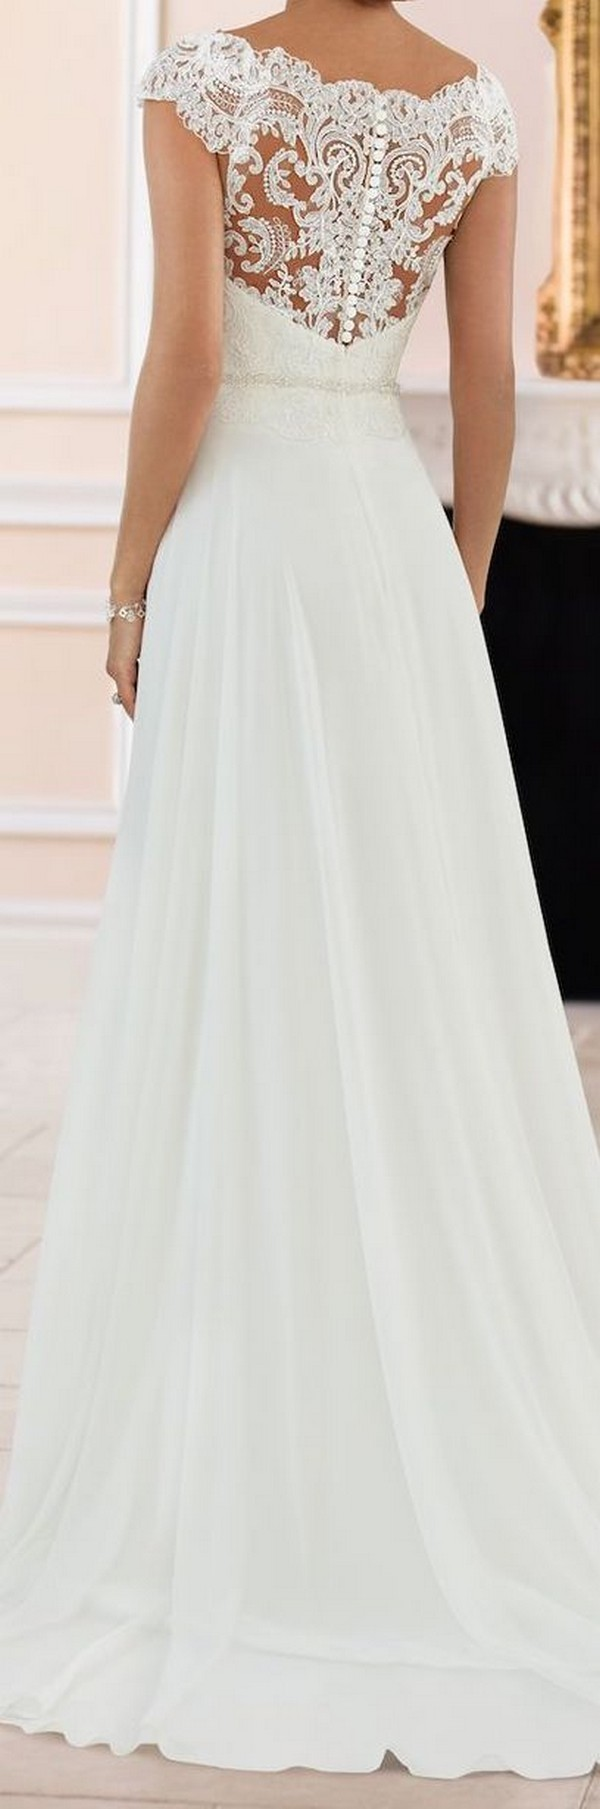 stella york lace wedding dress with cap sleeves